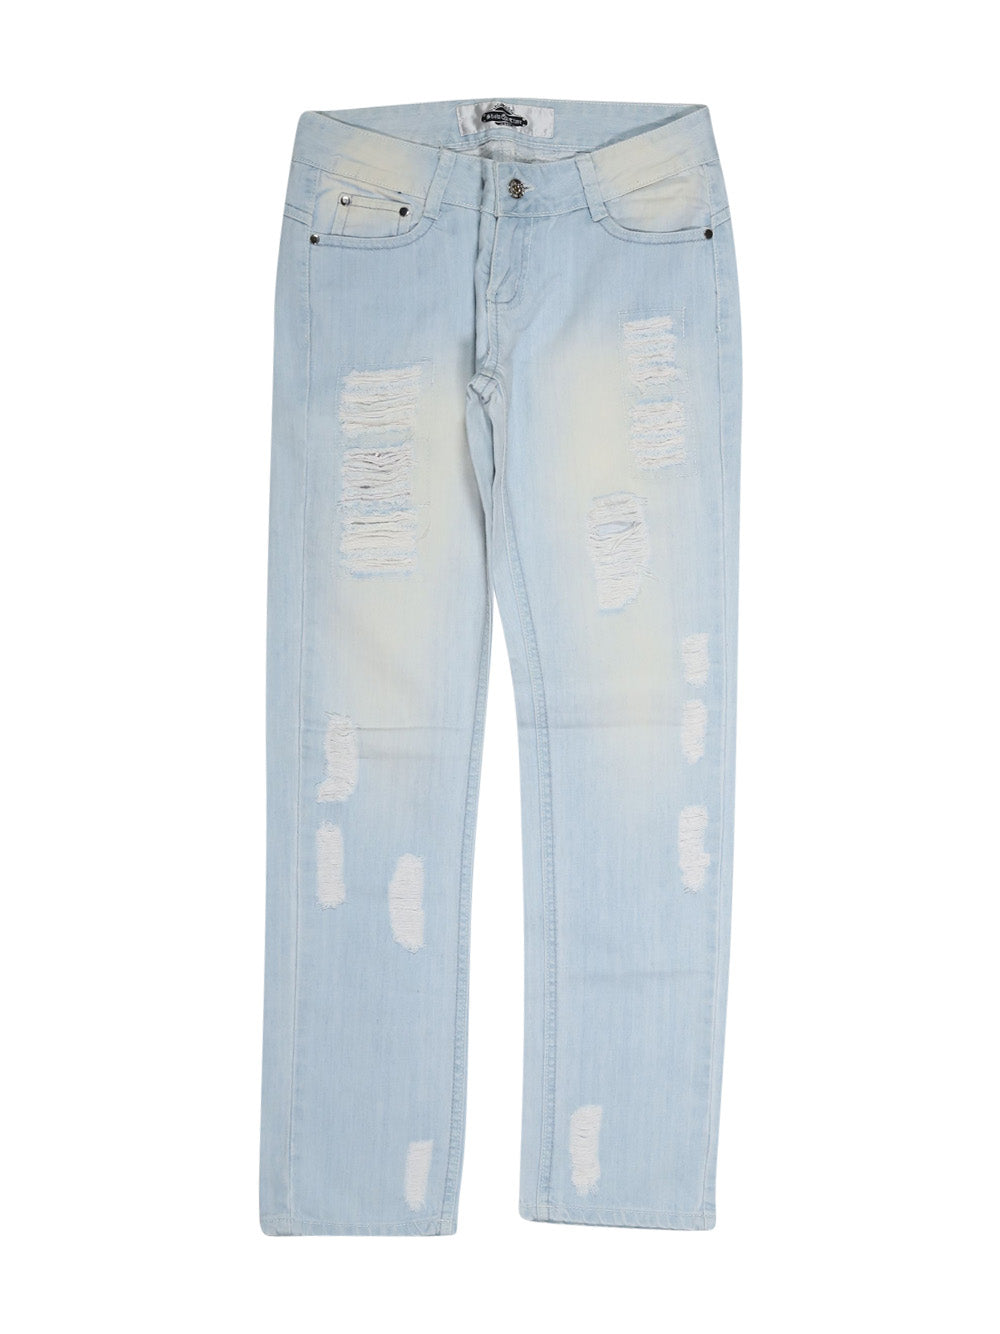 Front photo of Preloved shob Light-blue Woman's trousers - size 10/M